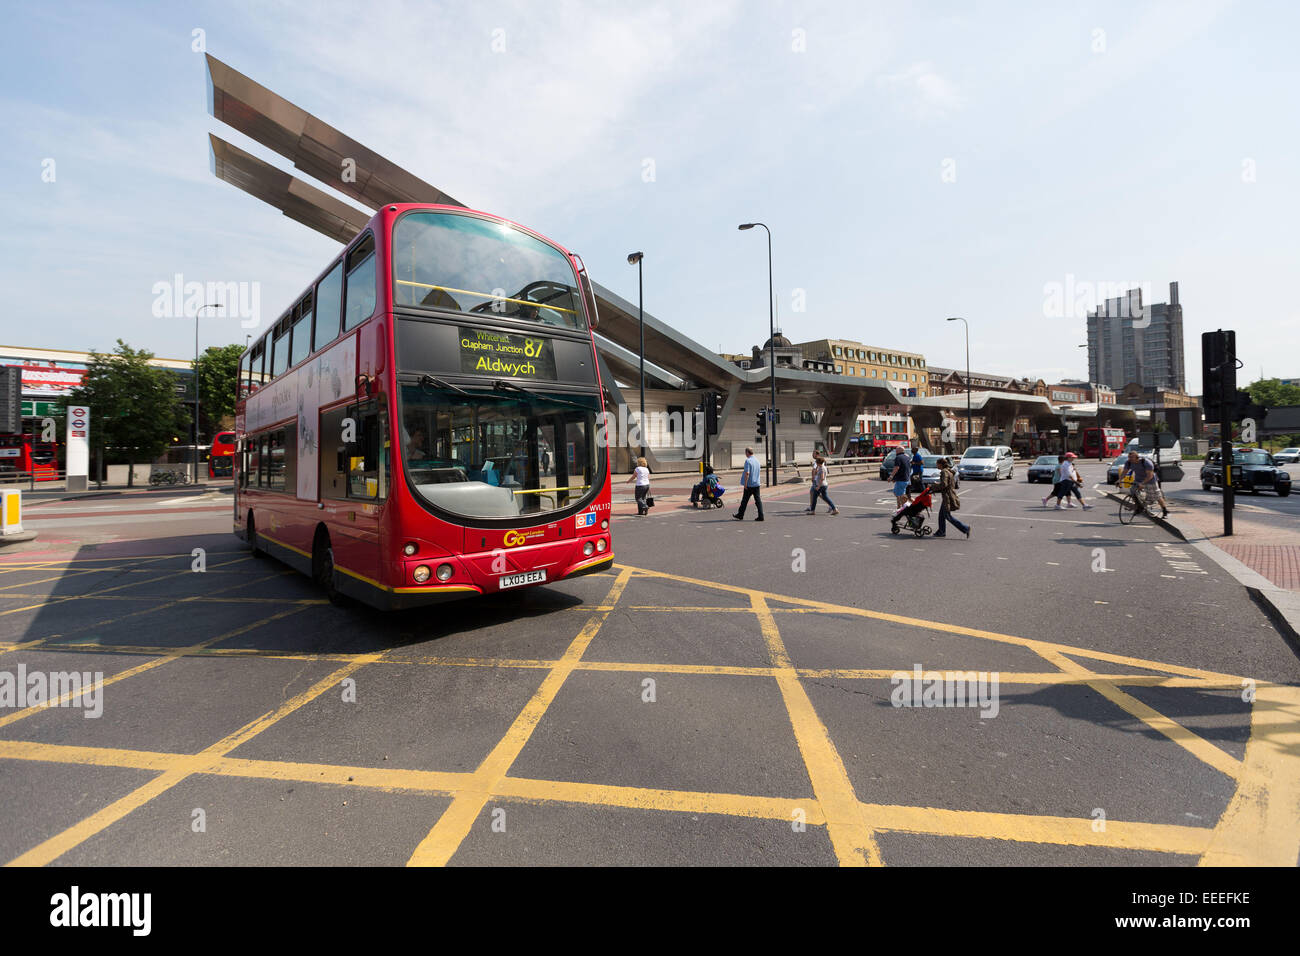 Buses at Vauxhall Cross - Stock Image